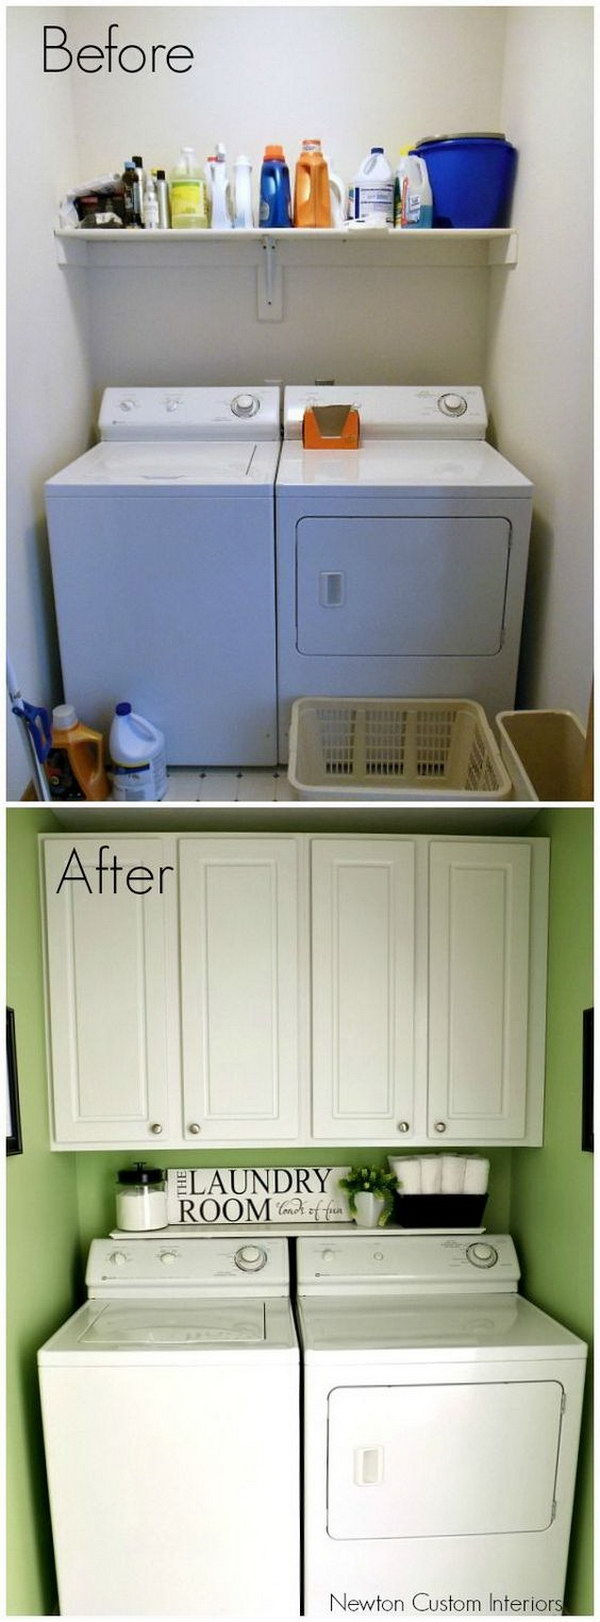 Small Laundry Room Reveal.